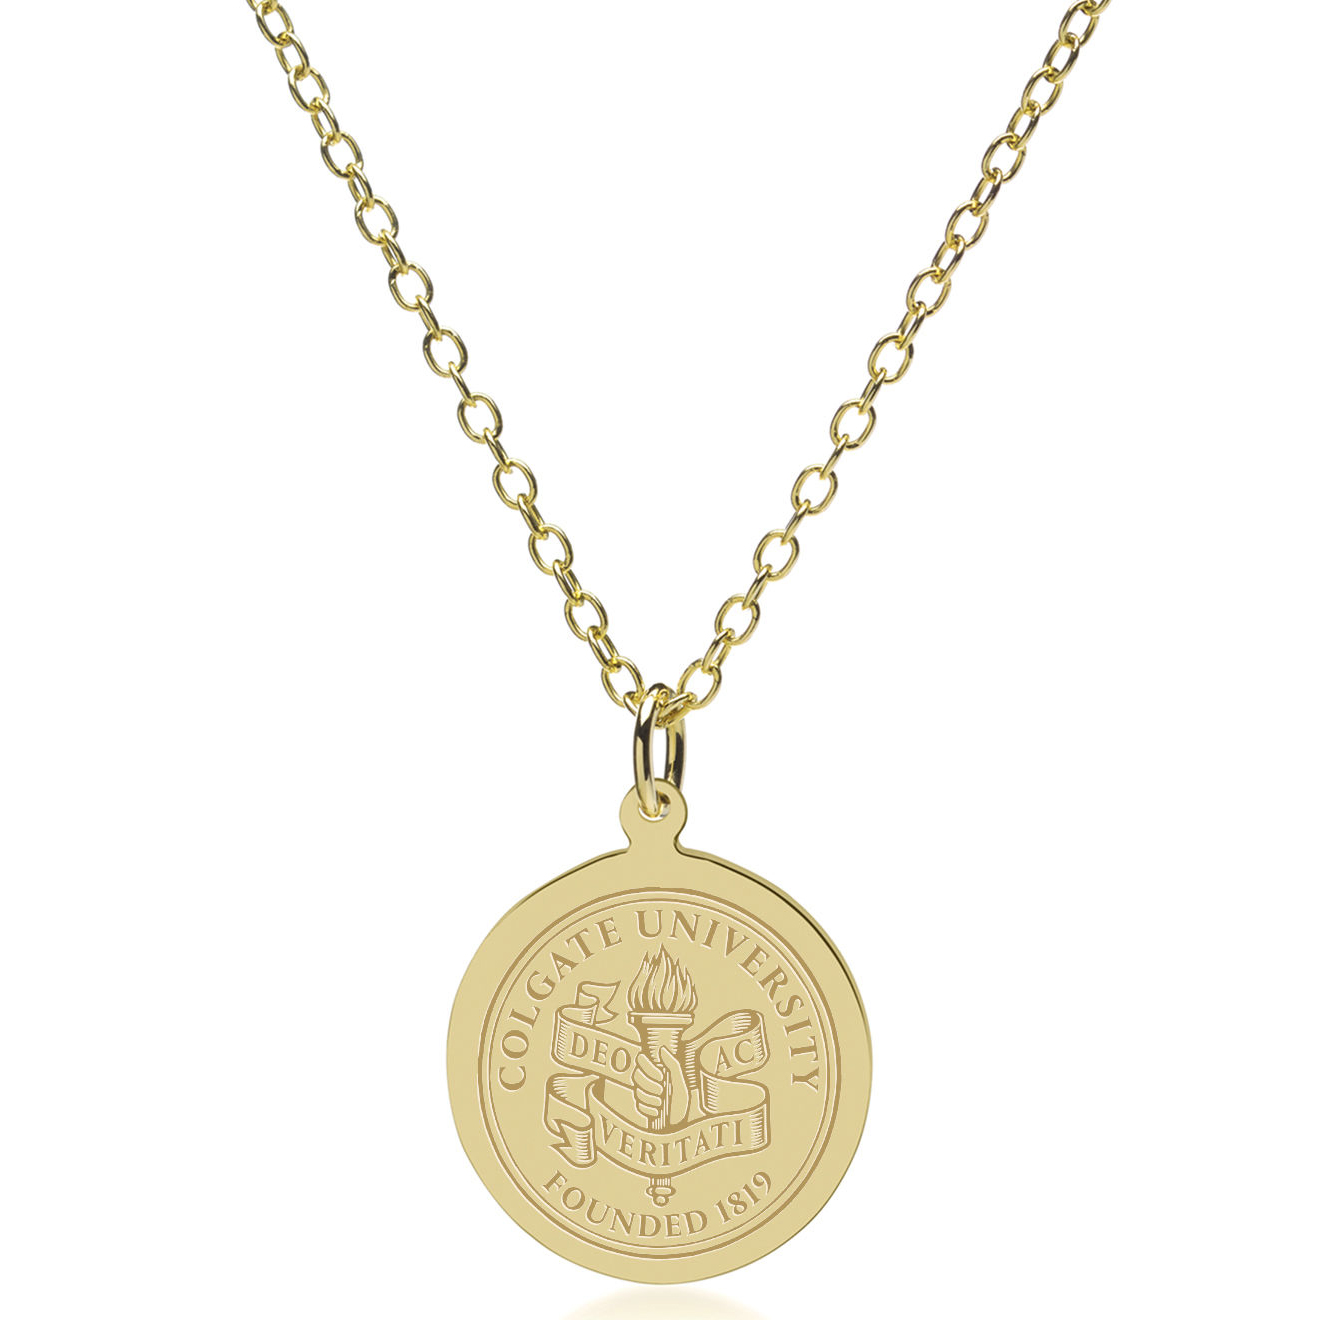 Colgate university 18k gold pendant chain at mhart co colgate 18k gold pendant chain image aloadofball Gallery